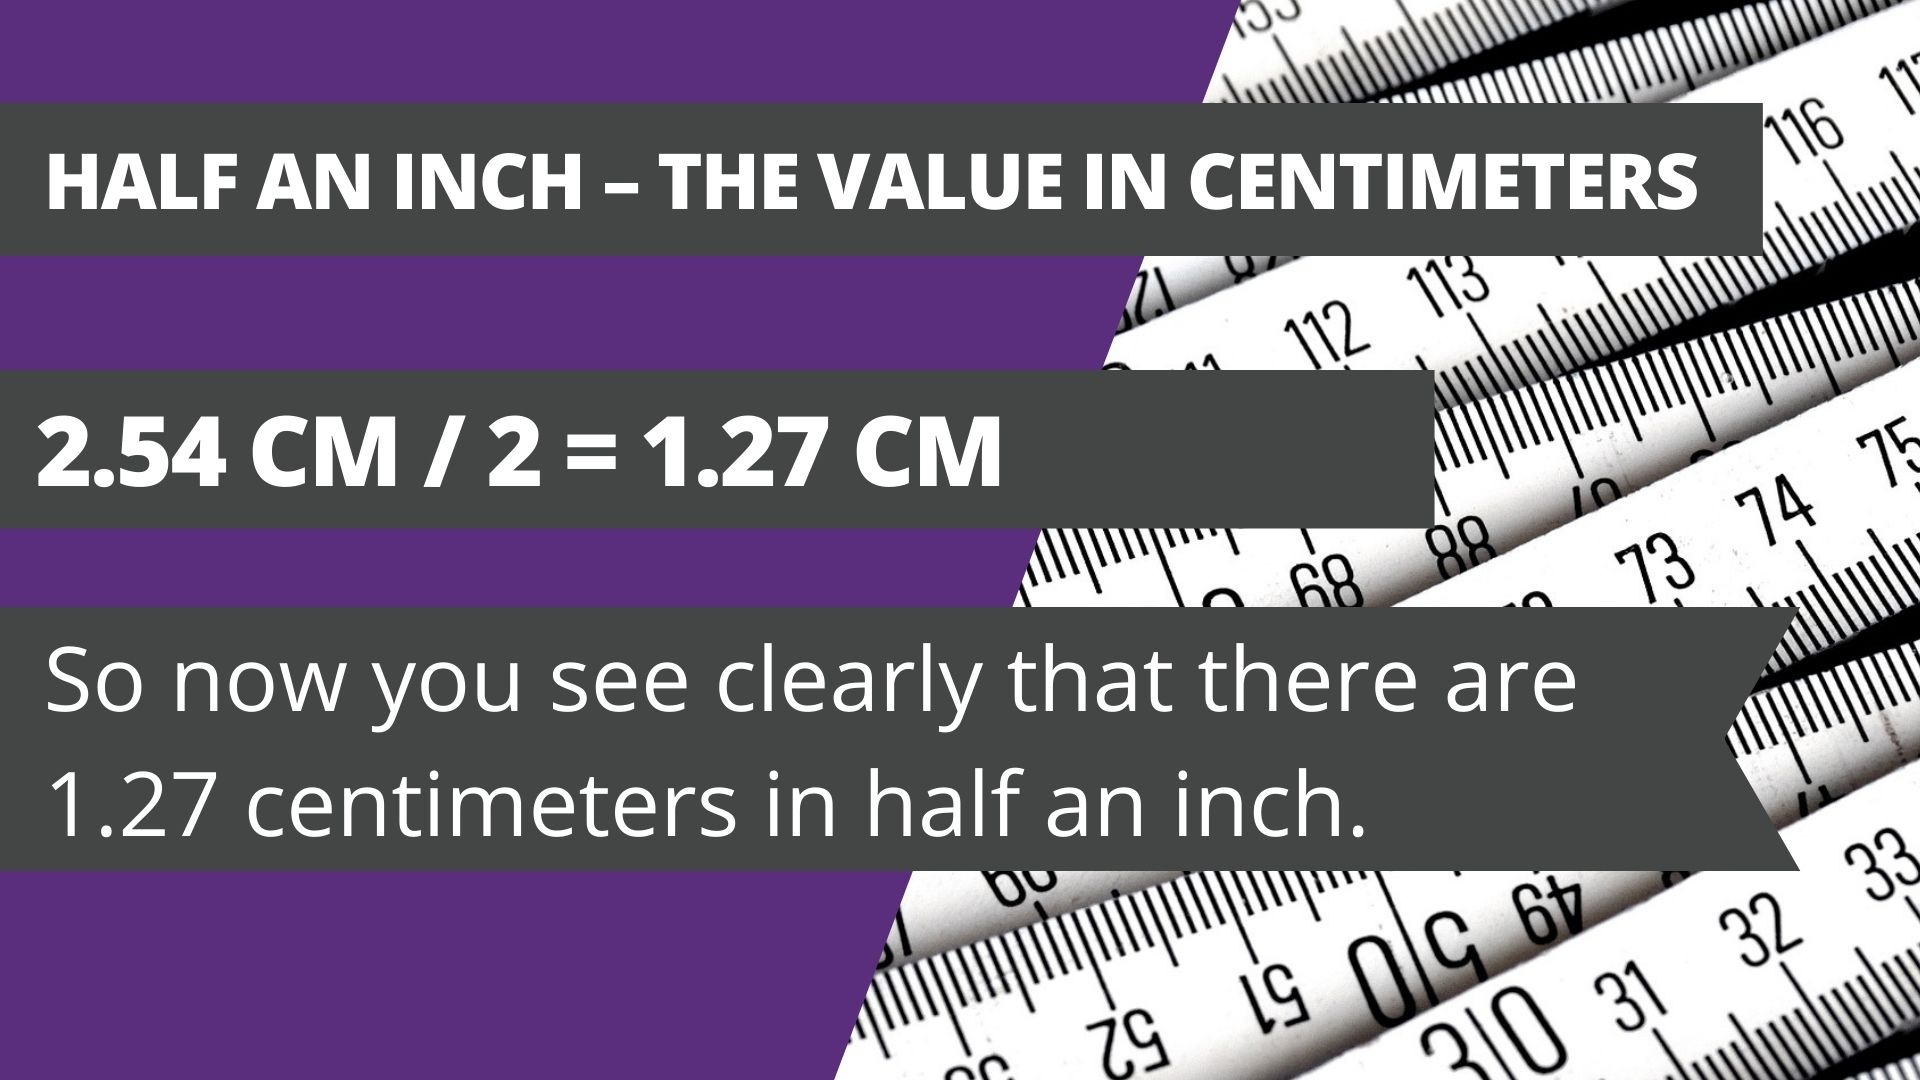 Half an inch – the value in centimeters